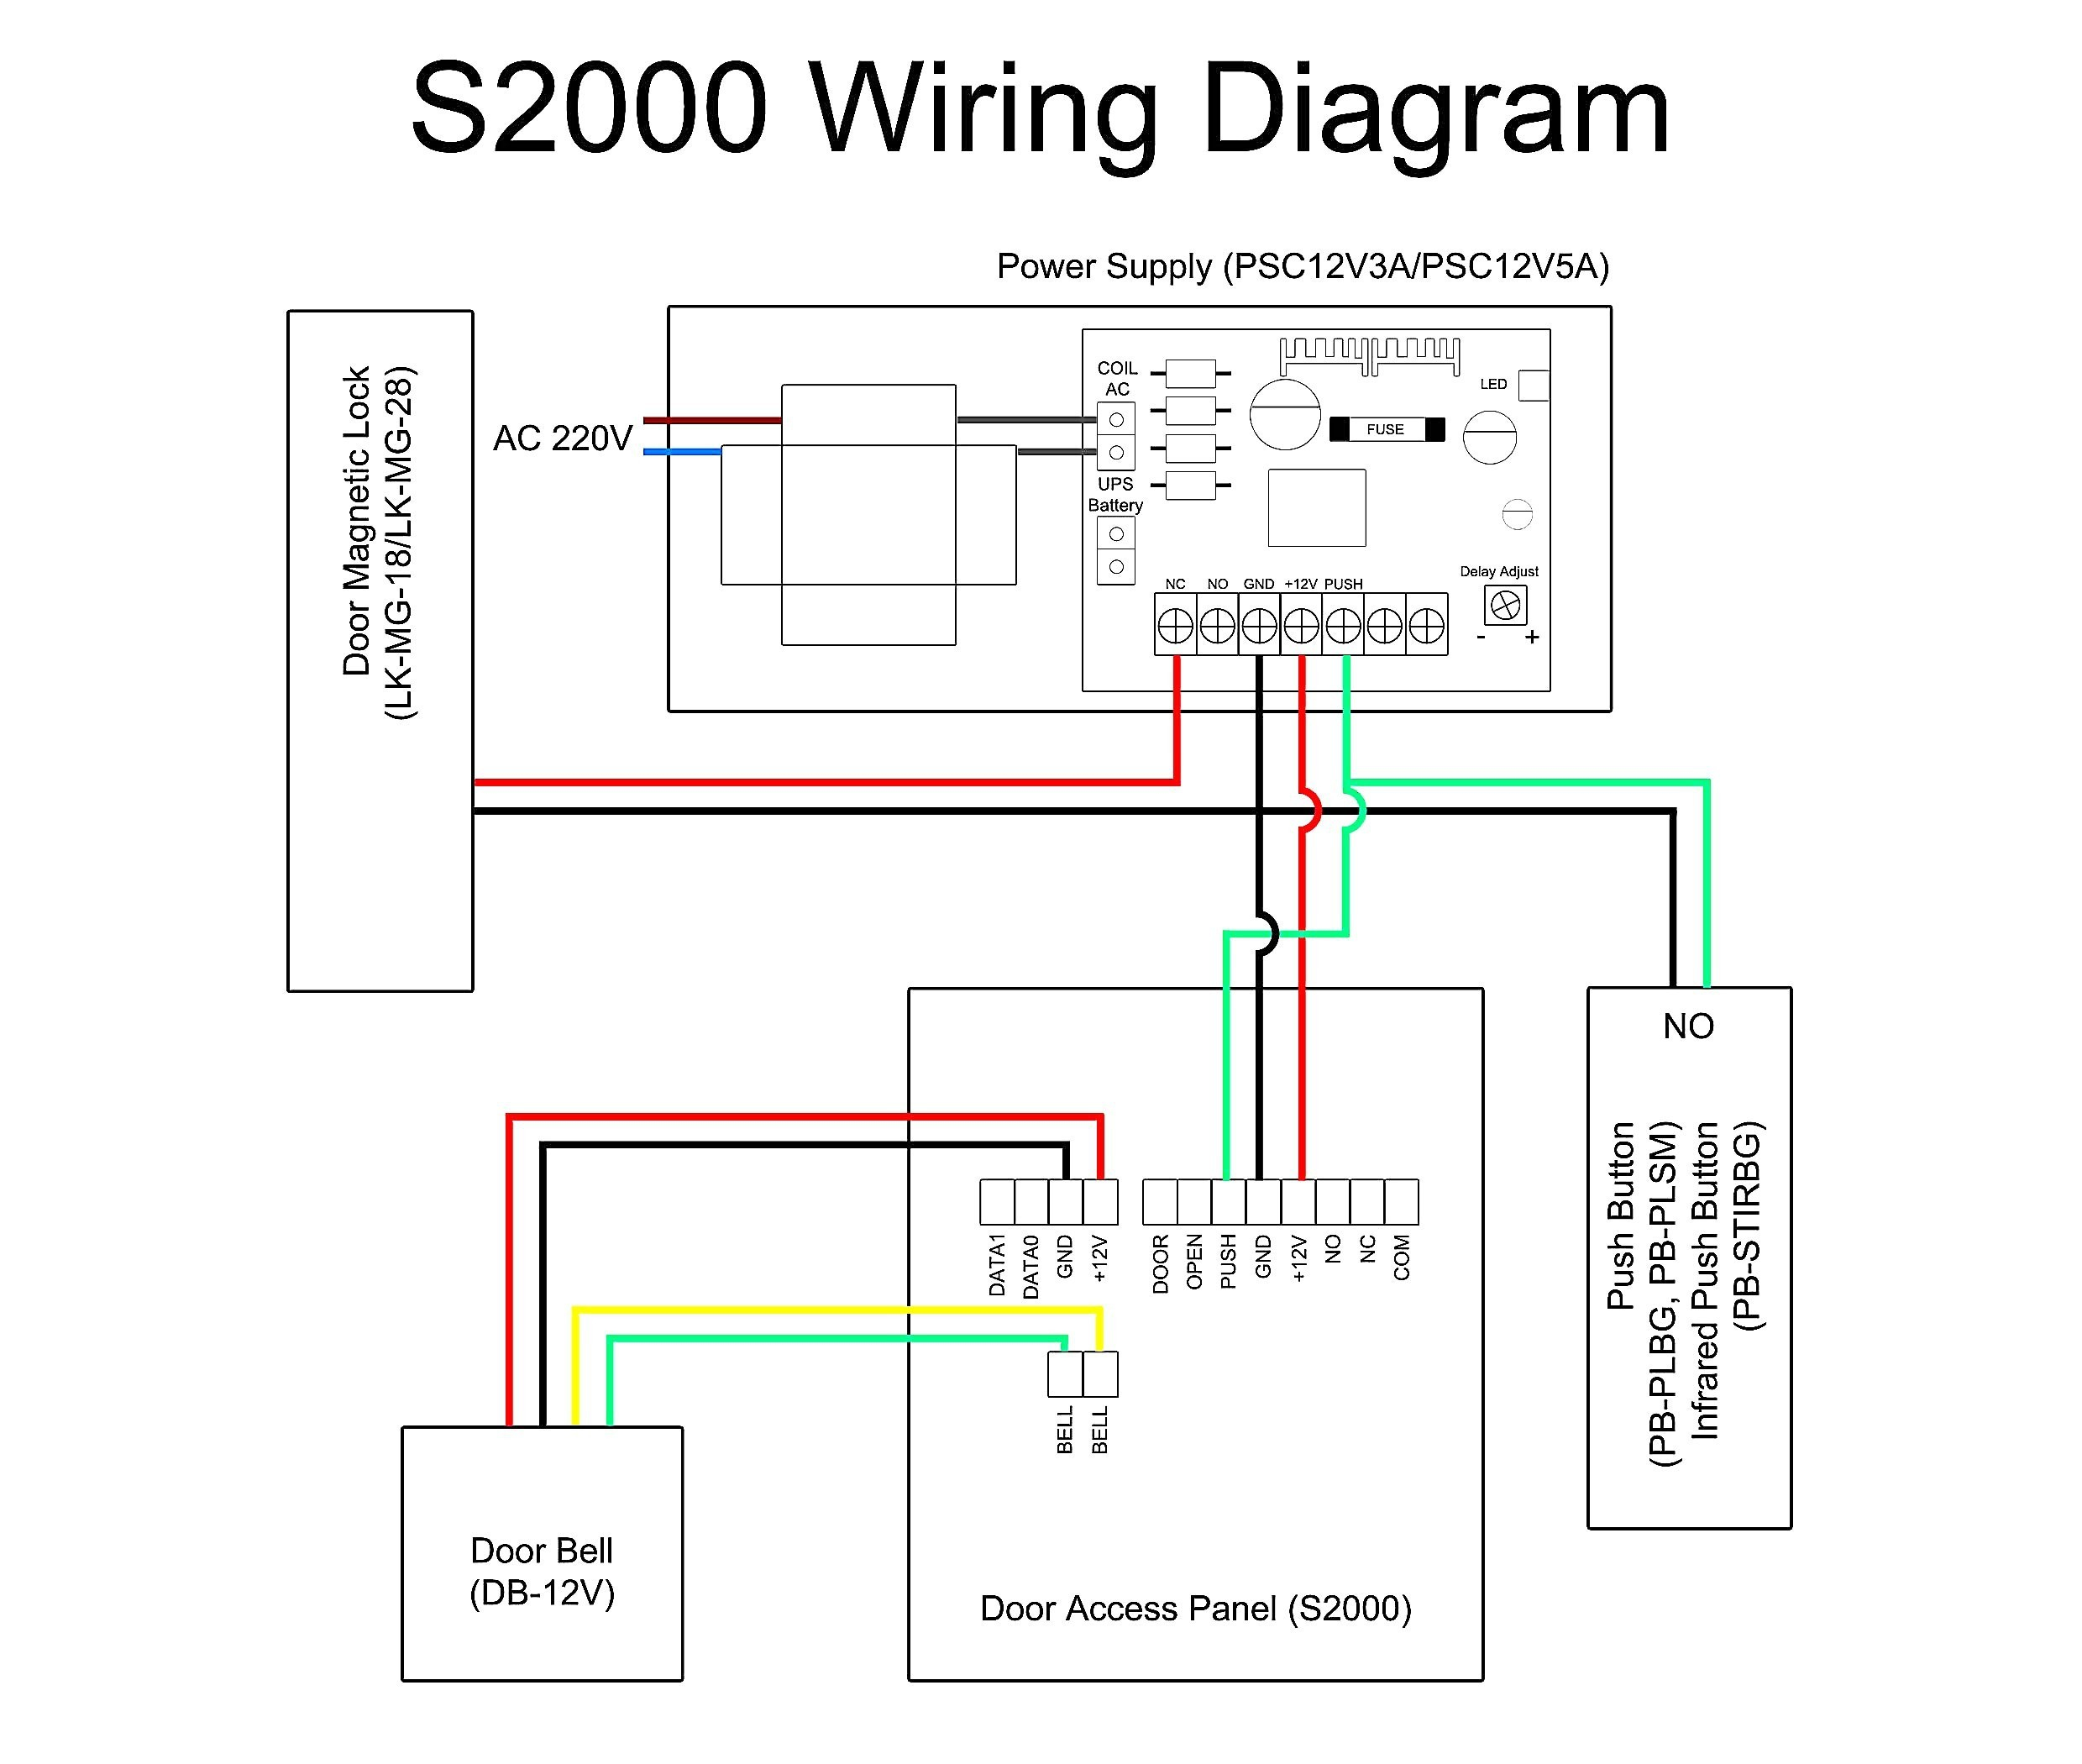 sensormatic wiring diagram Collection-bosch ptz camera wiring diagram manual new pelco ccd camera wiring rh gidn co Dome Camera Wiring Diagram Sensormatic PTZ Camera Wiring 5-k